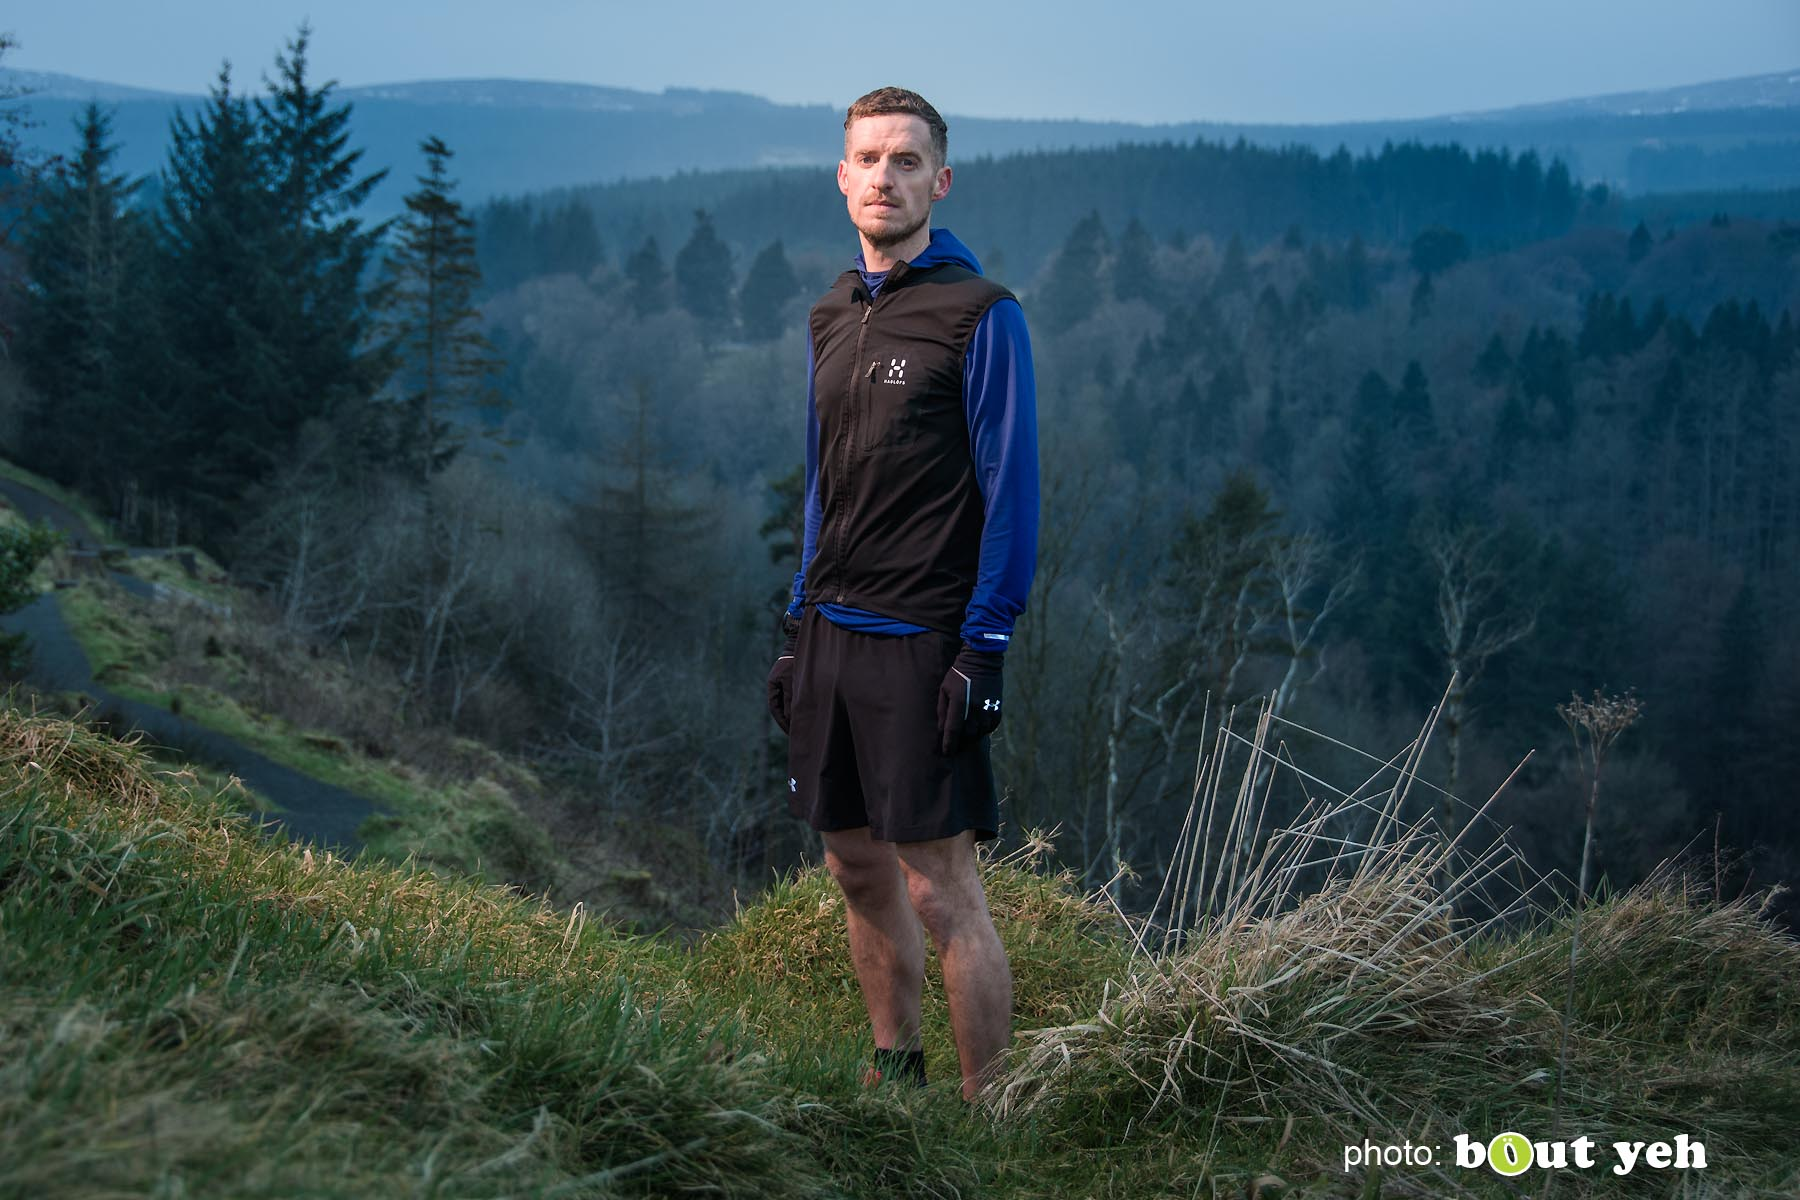 Tim, of Ballymena Runners, at Glenariff Forest, Northern Ireland - photo 0610.